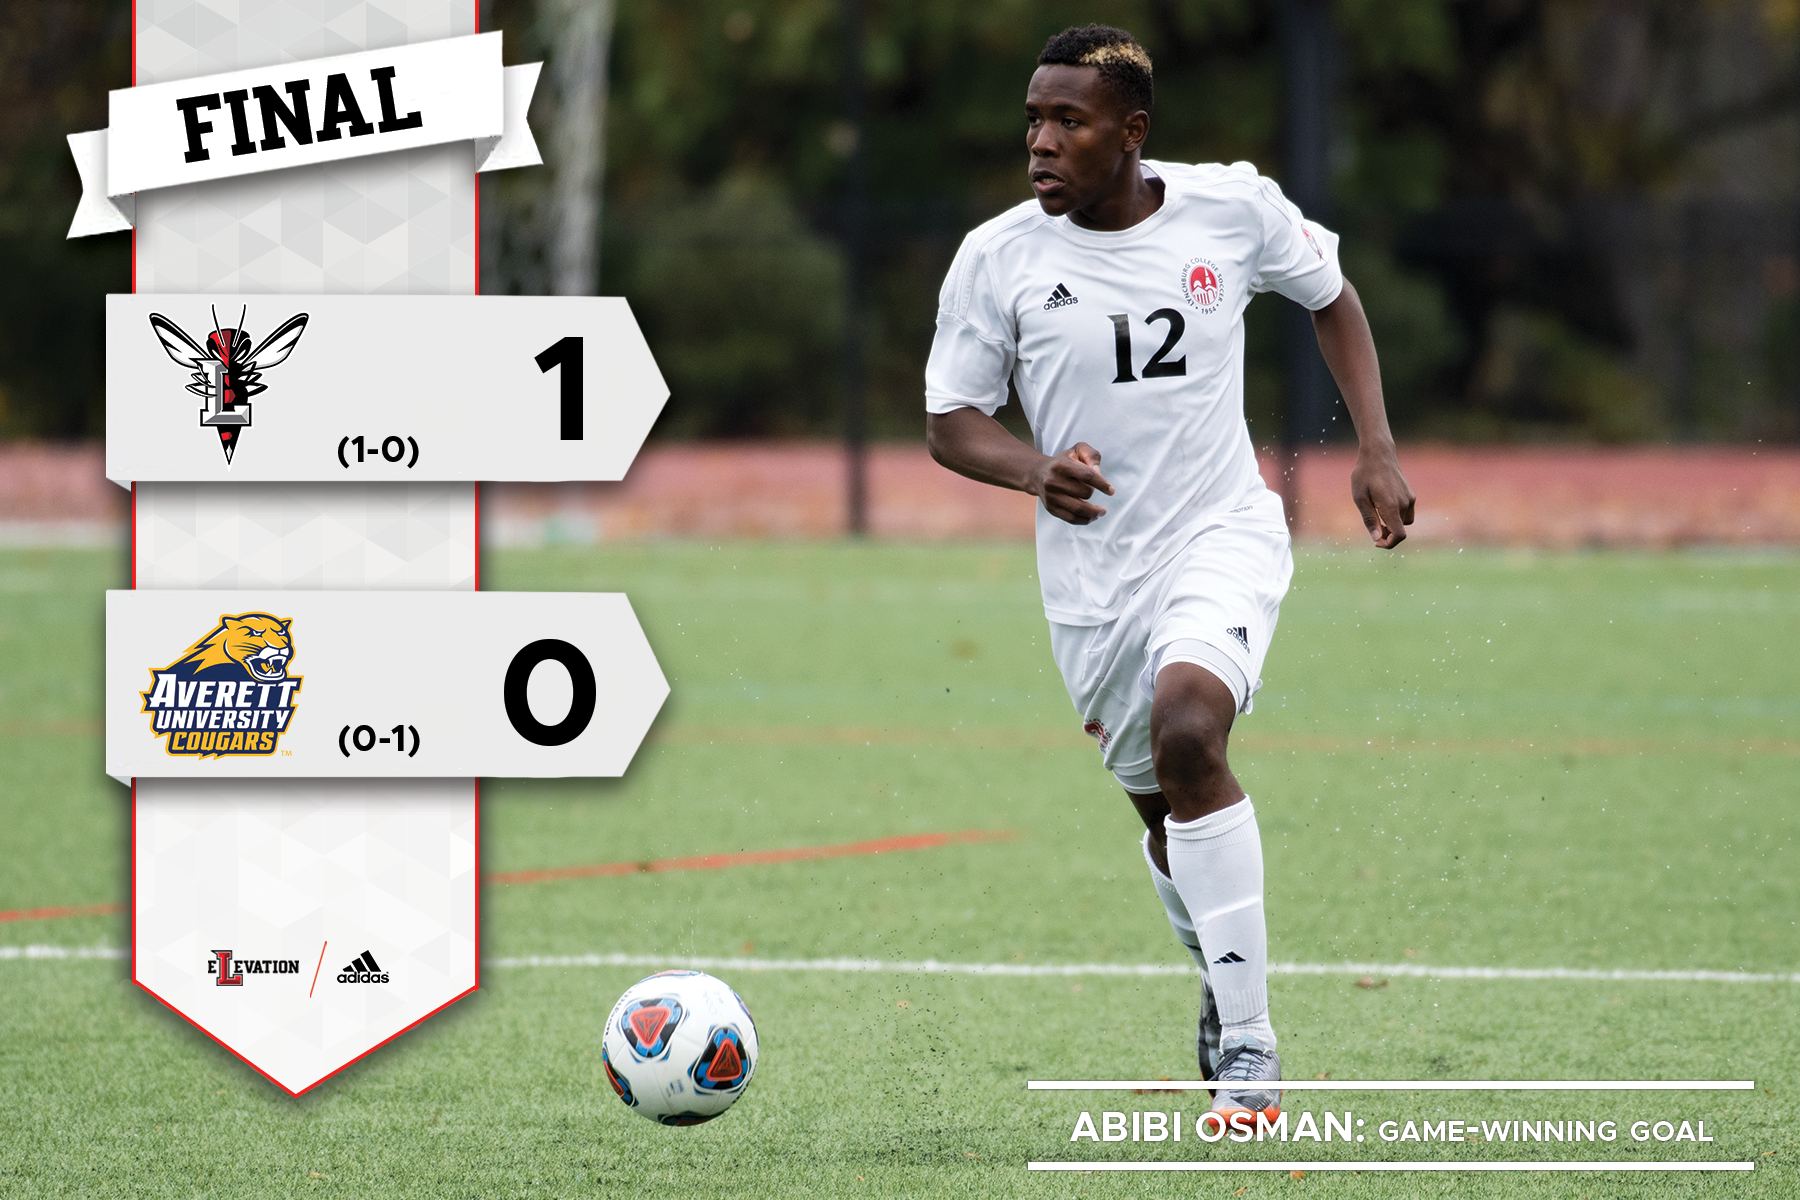 Abibi Osman dribbles the soccer ball. Graphic with 1-0 final score from men's soccer game.